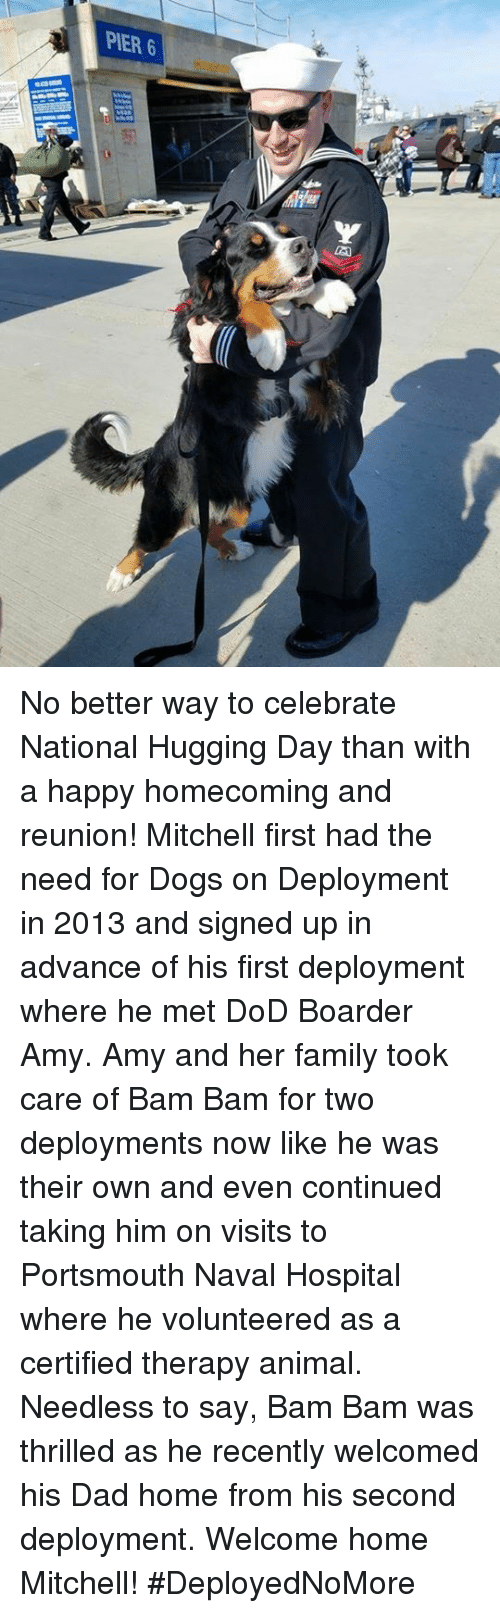 boarder: PIER 6 No better way to celebrate National Hugging Day than with a happy homecoming and reunion!  Mitchell first had the need for Dogs on Deployment in 2013 and signed up in advance of his first deployment where he met DoD Boarder Amy. Amy and her family took care of Bam Bam for two deployments now like he was their own and even continued taking him on visits to Portsmouth Naval Hospital where he volunteered as a certified therapy animal.   Needless to say, Bam Bam was thrilled as he recently welcomed his Dad home from his second deployment. Welcome home Mitchell! #DeployedNoMore